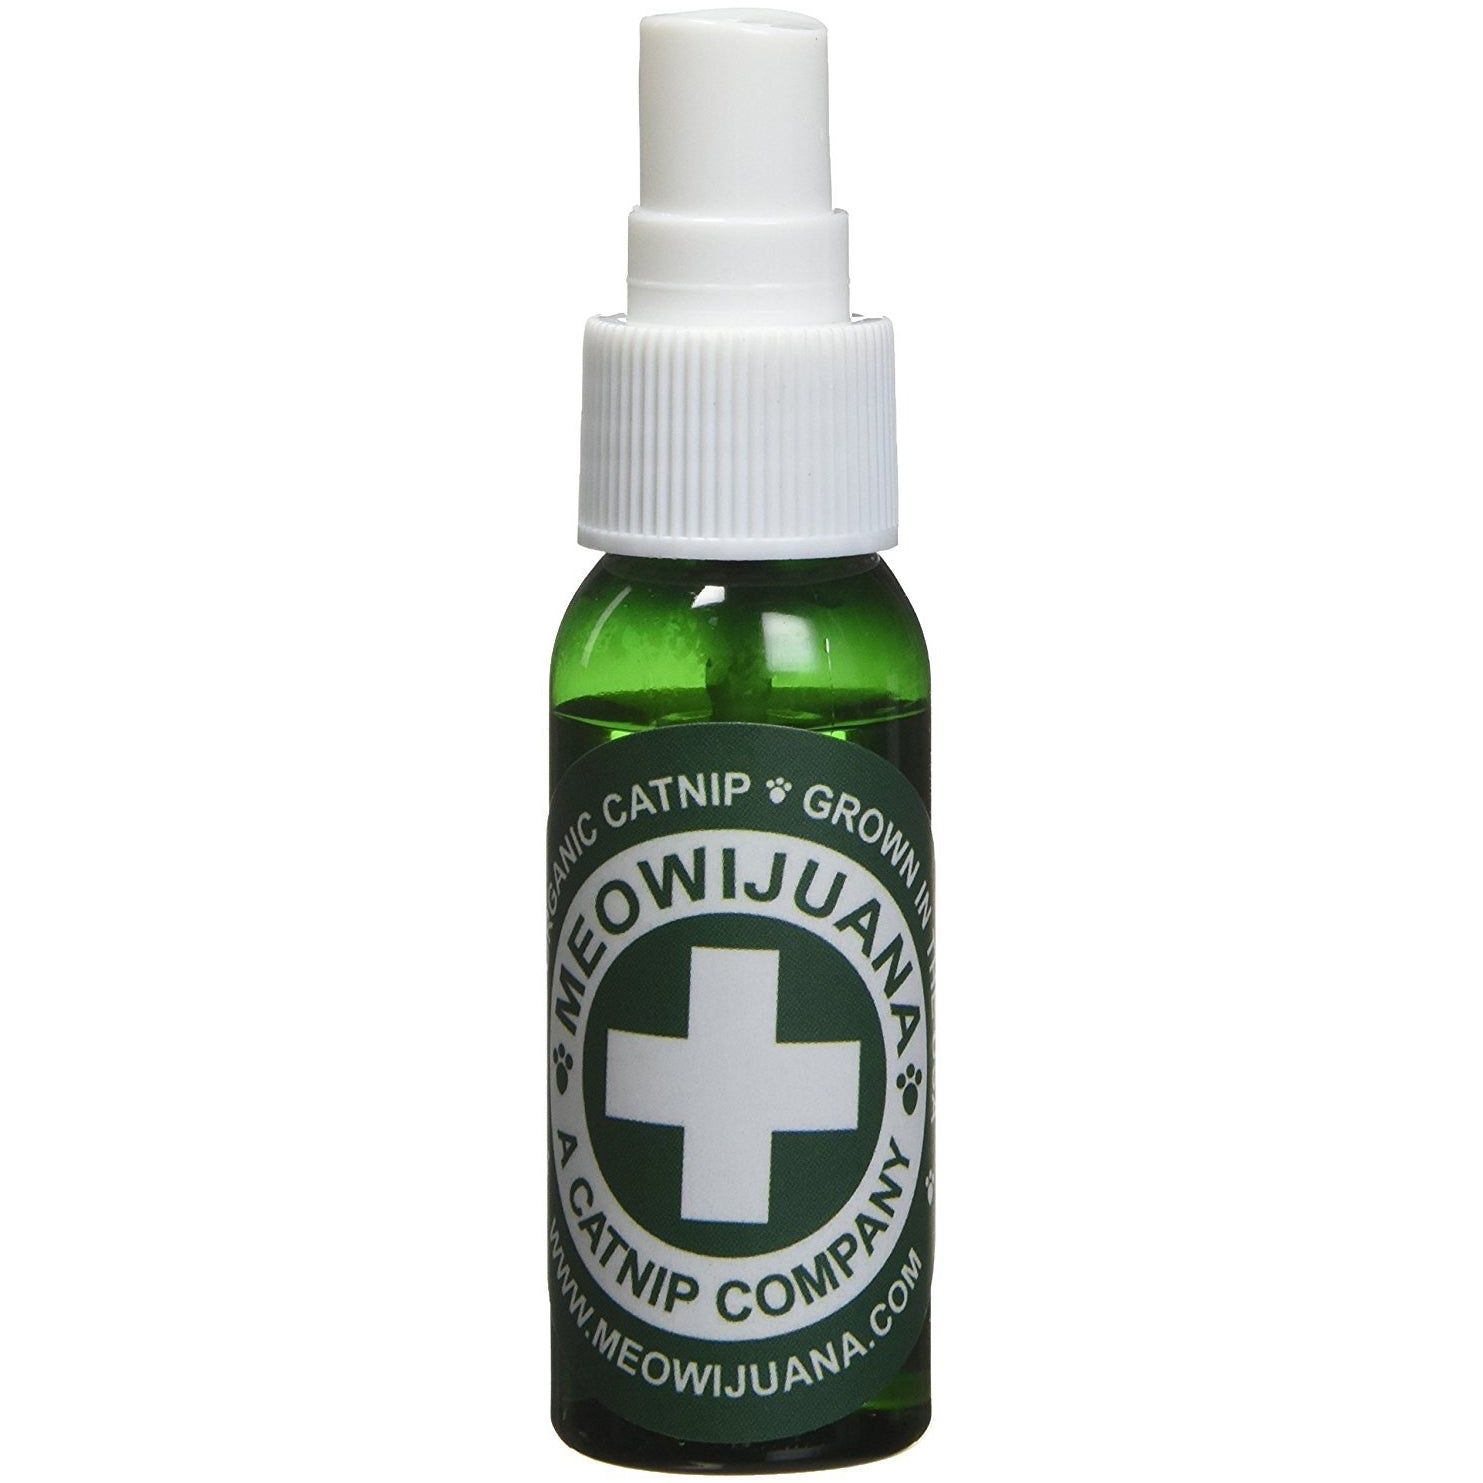 Meowijuana Catnip Spray